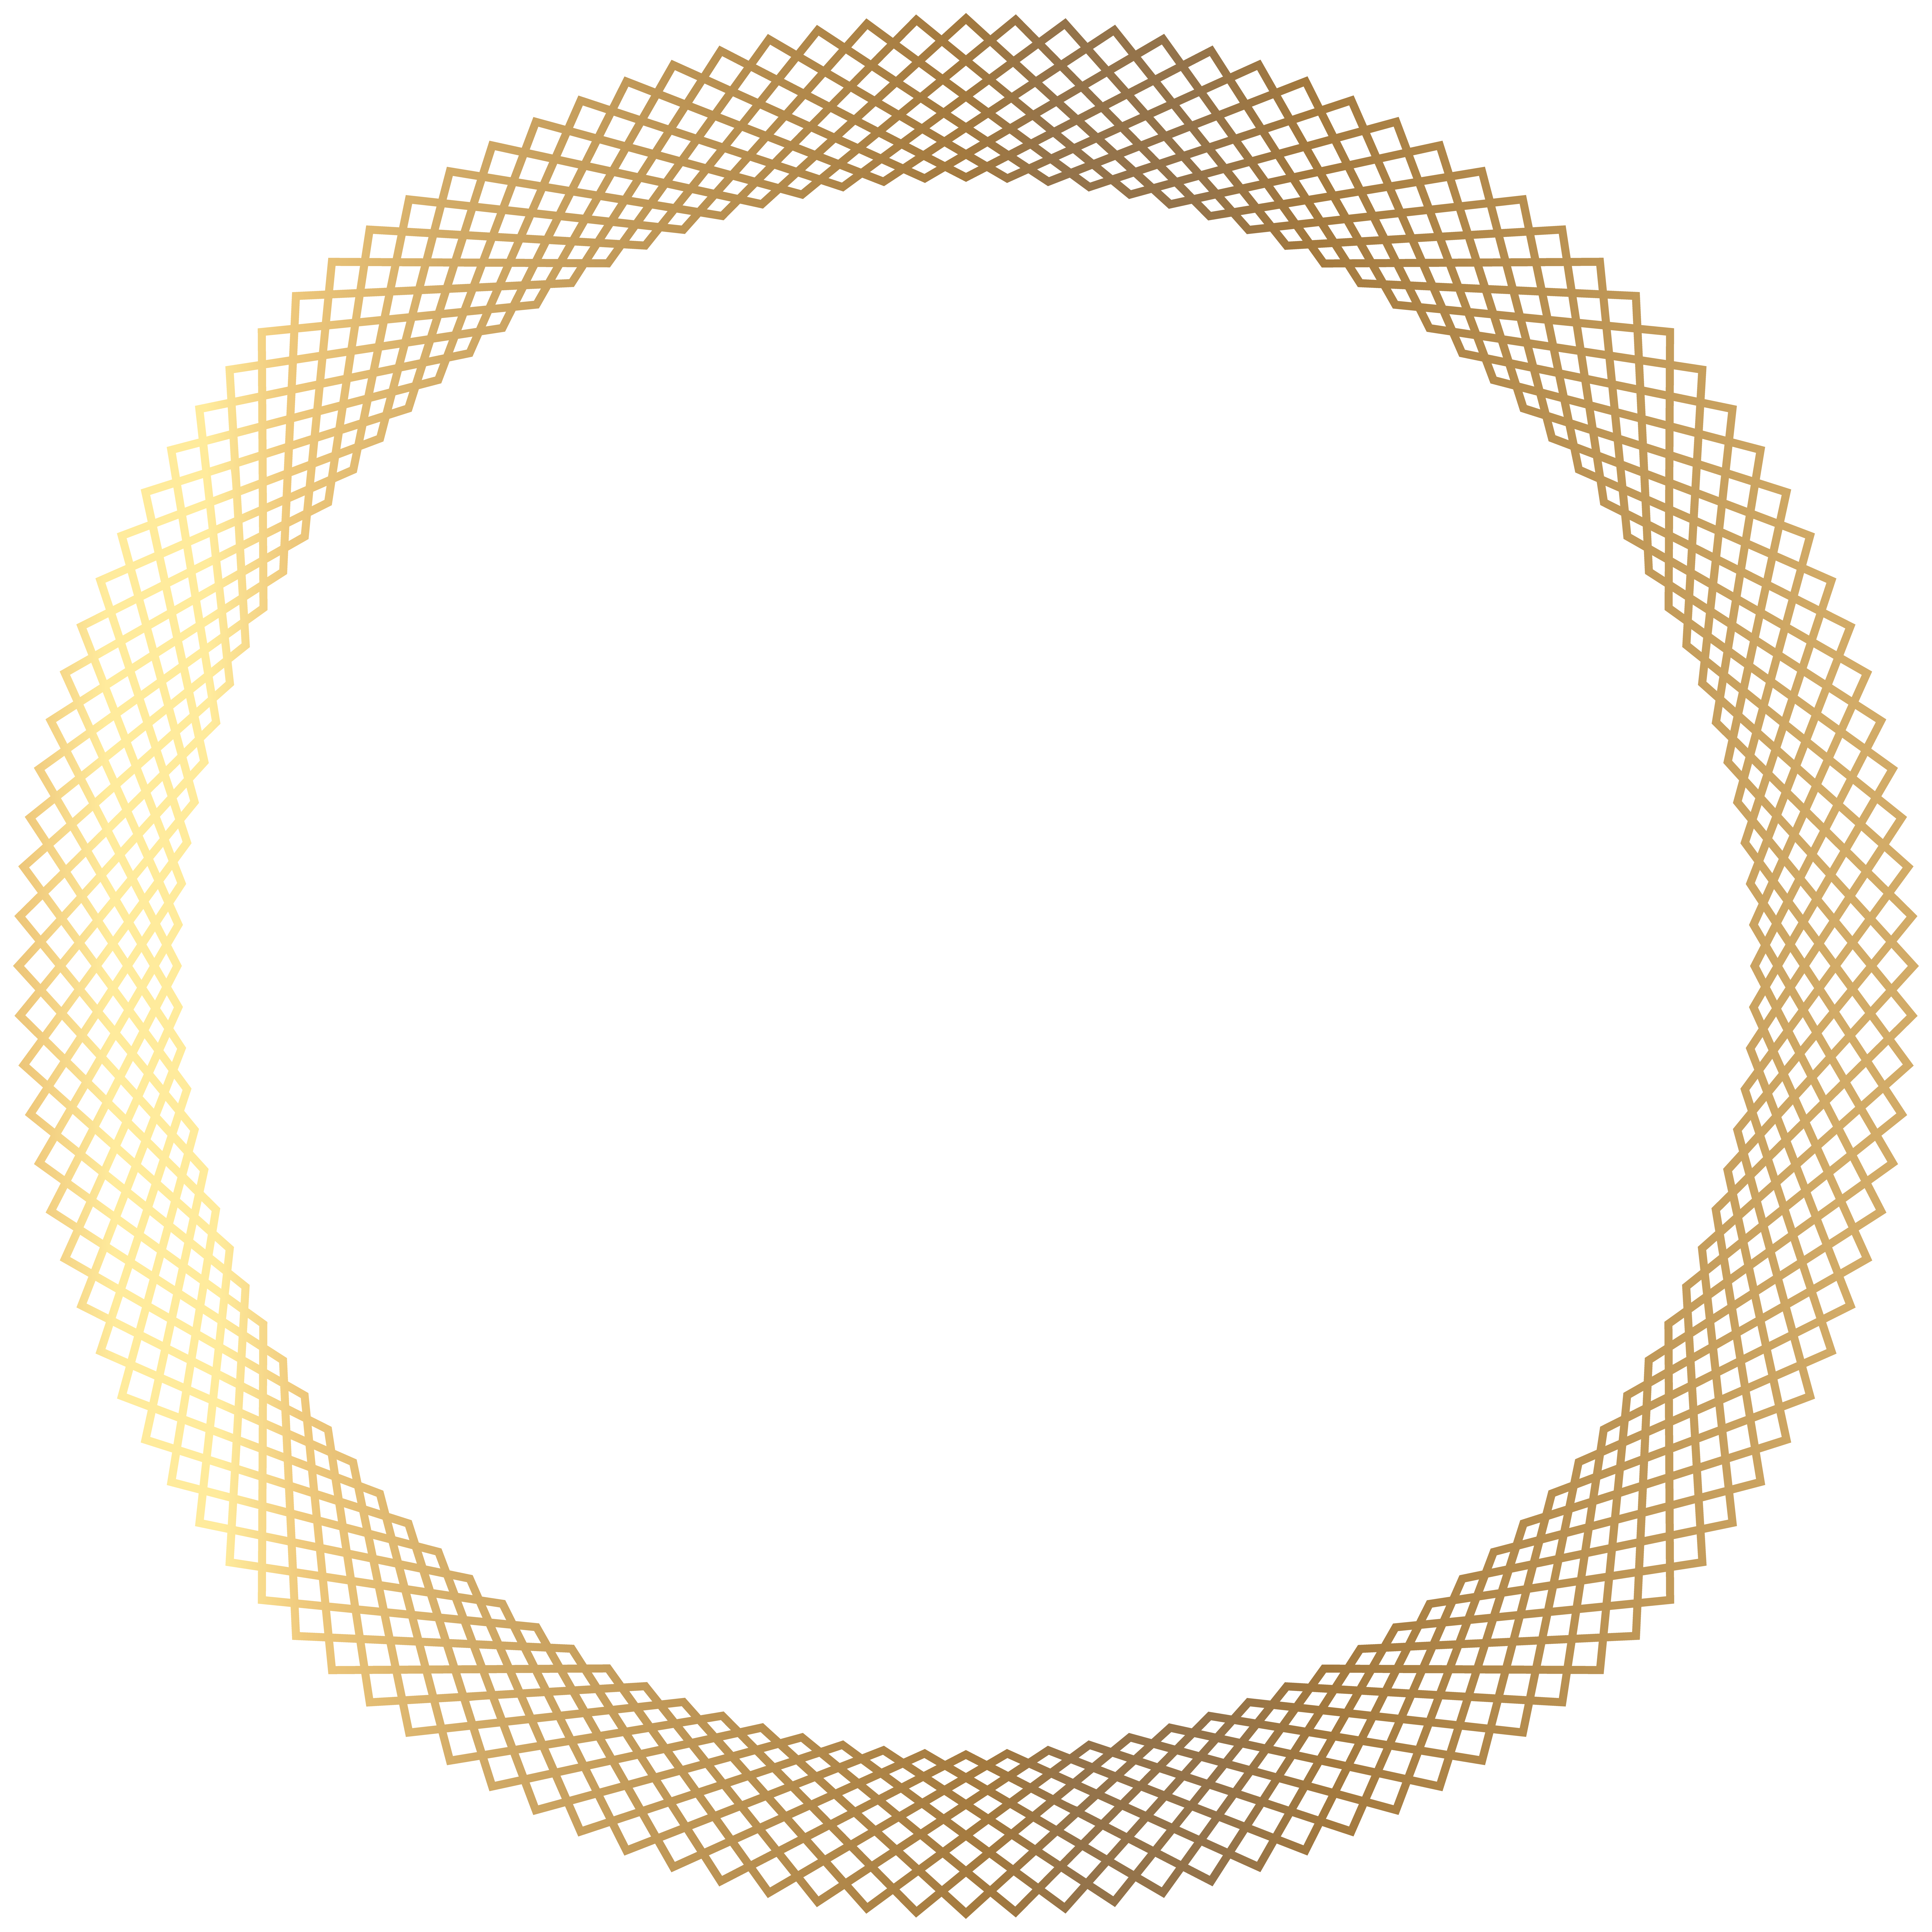 8000x8000 Deco Gold Round Border Png Transparent Clip Artu200b Gallery